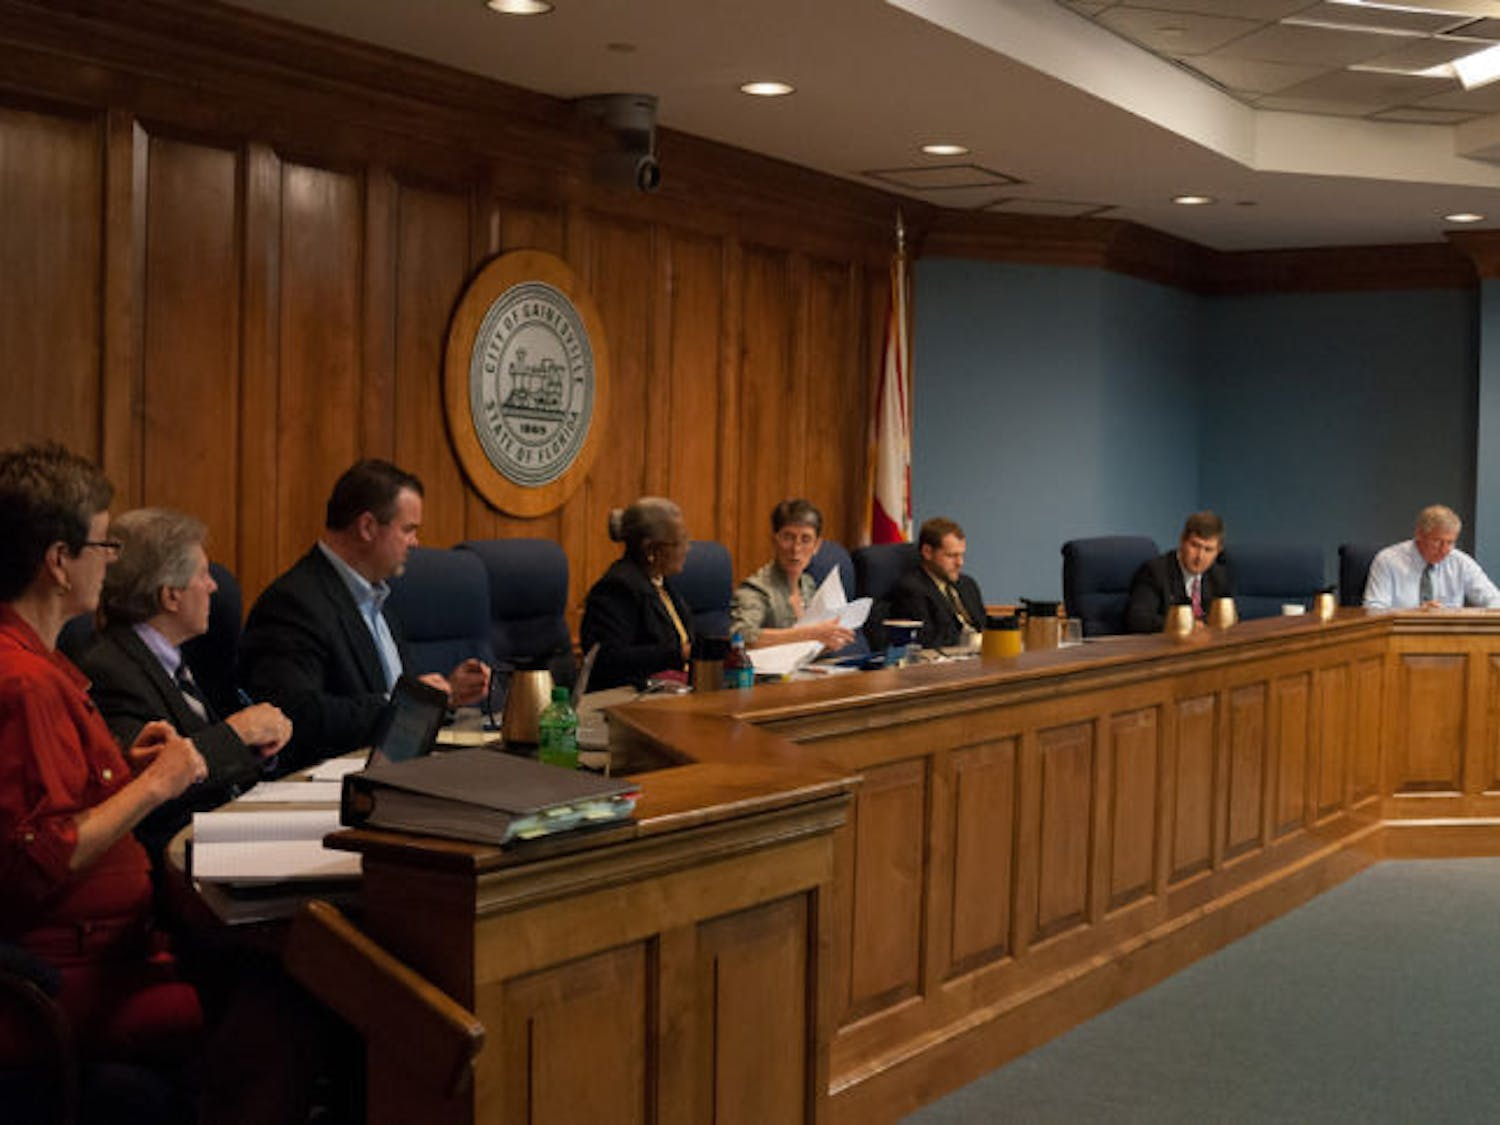 The City Commission held a meeting at City Hall on Monday afternoon to discuss issues like developing a plan for University Corners.